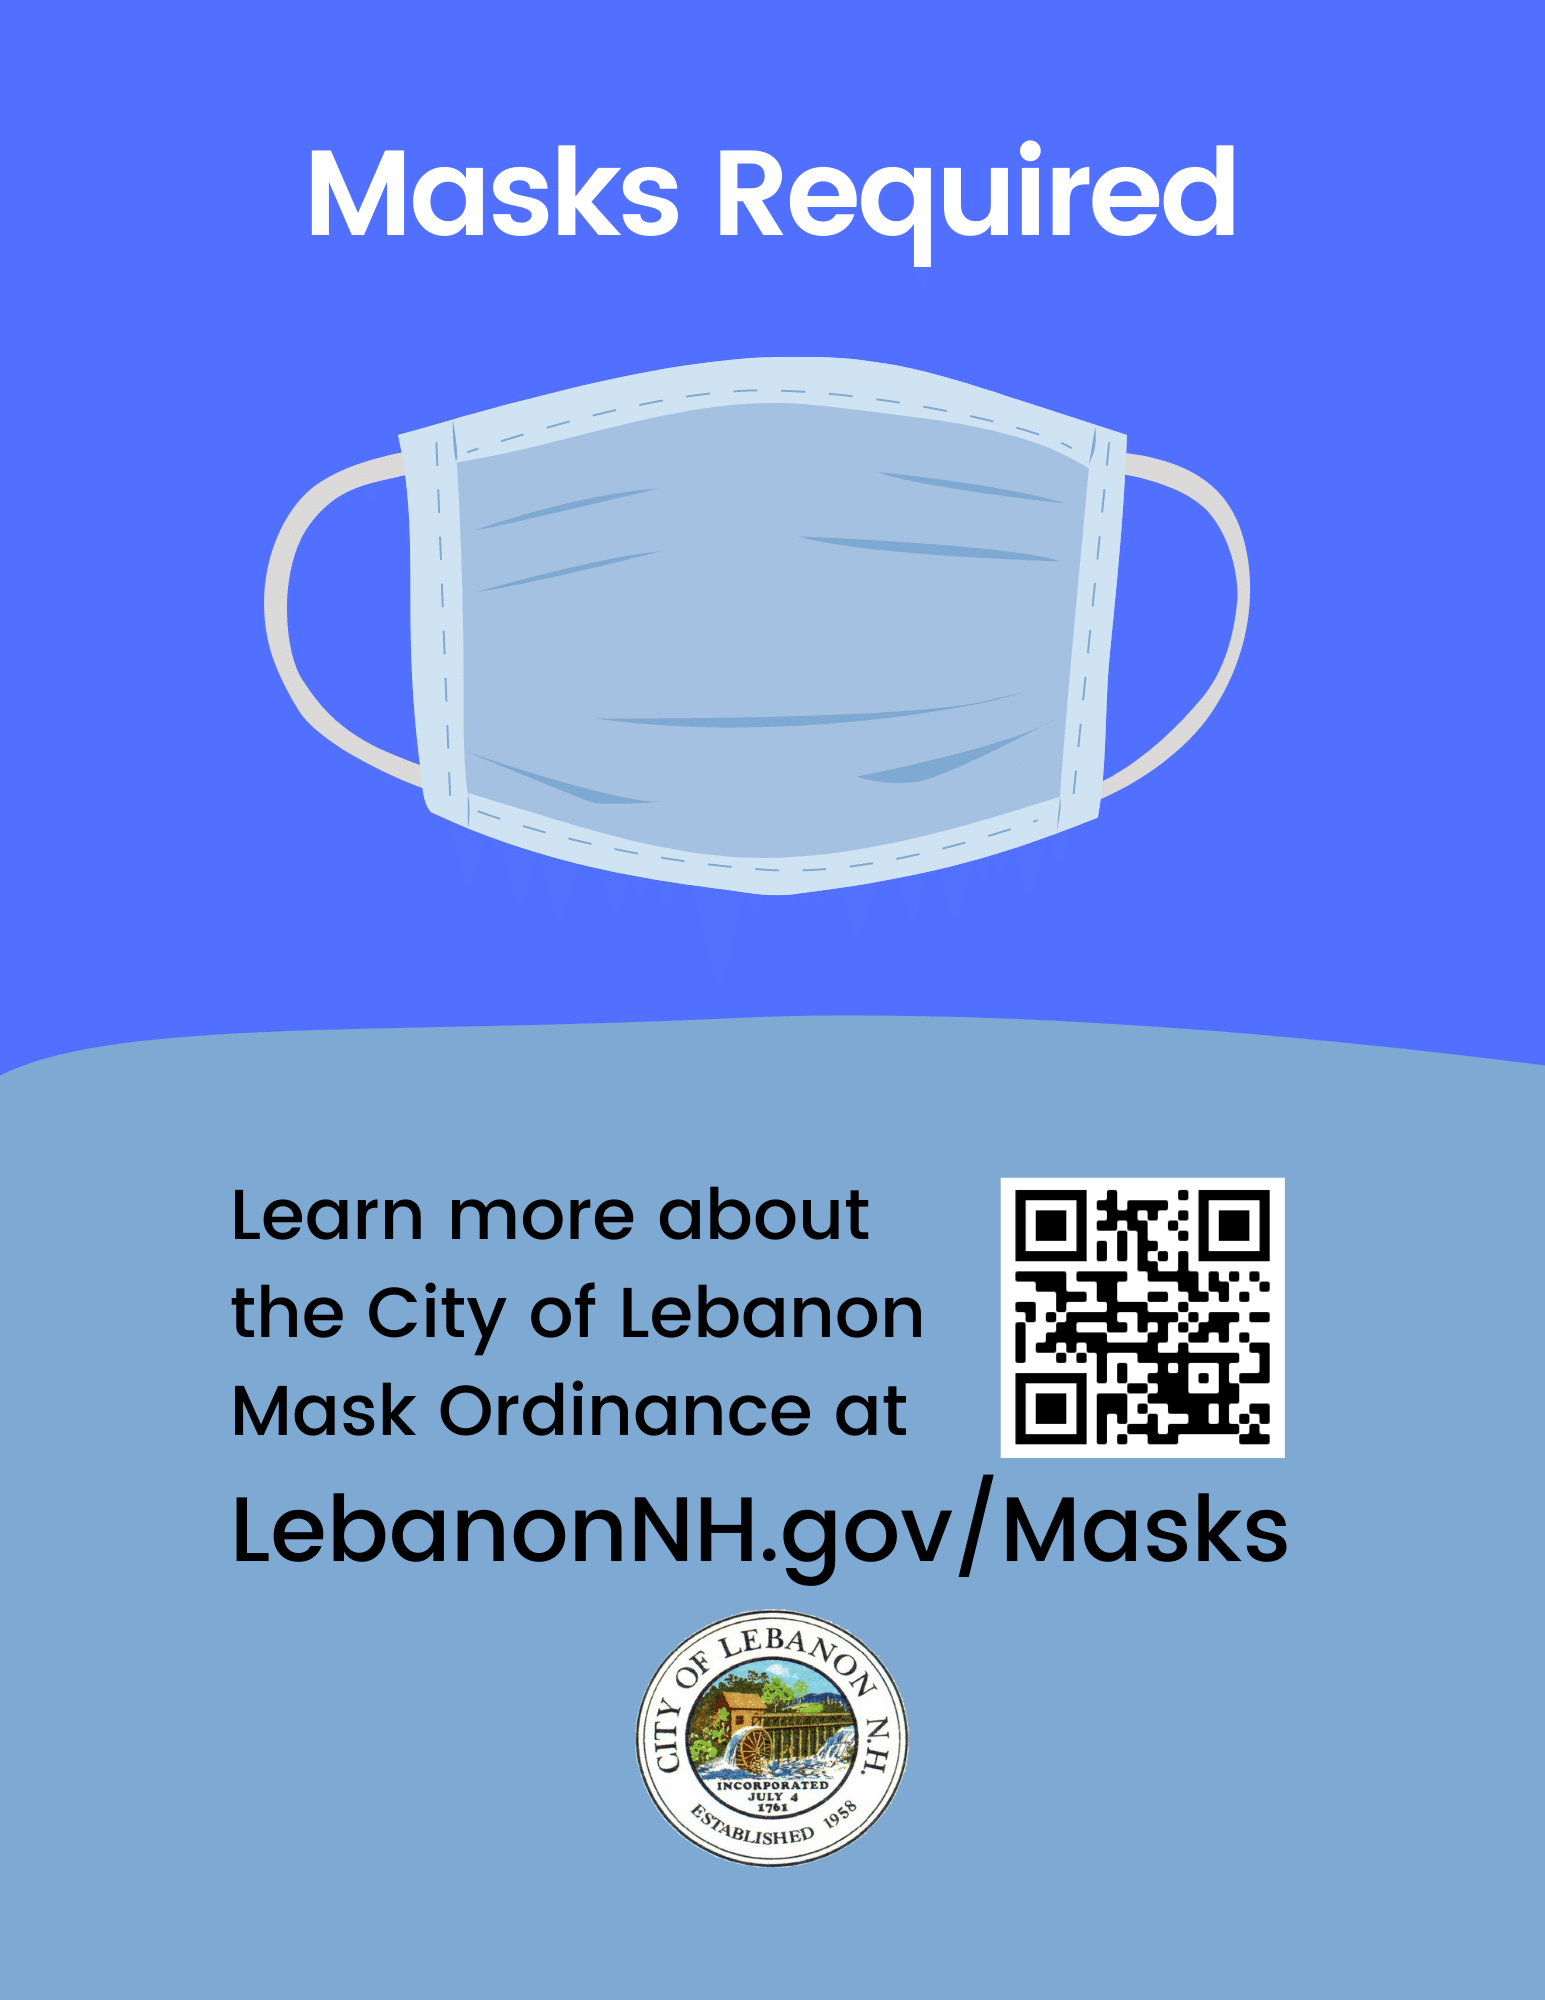 Masks Required poster with QR code pointing to LebanonNH.gov/Masks